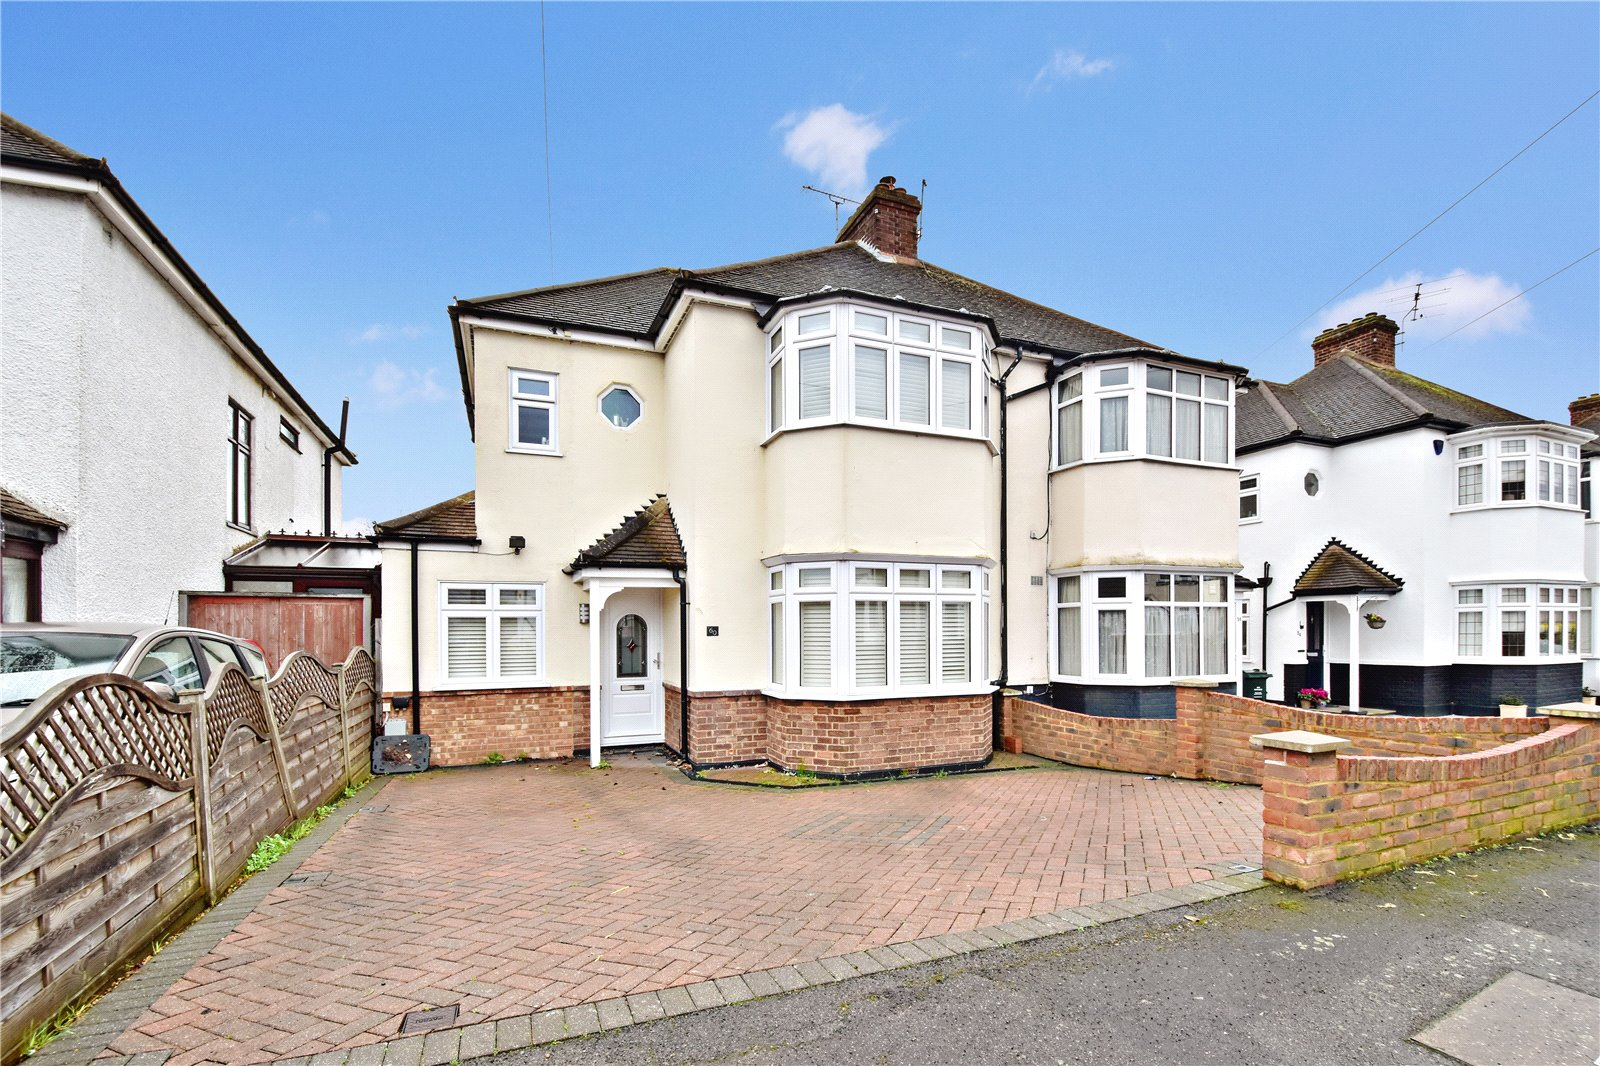 Denver Road, West Dartford, Kent, DA1